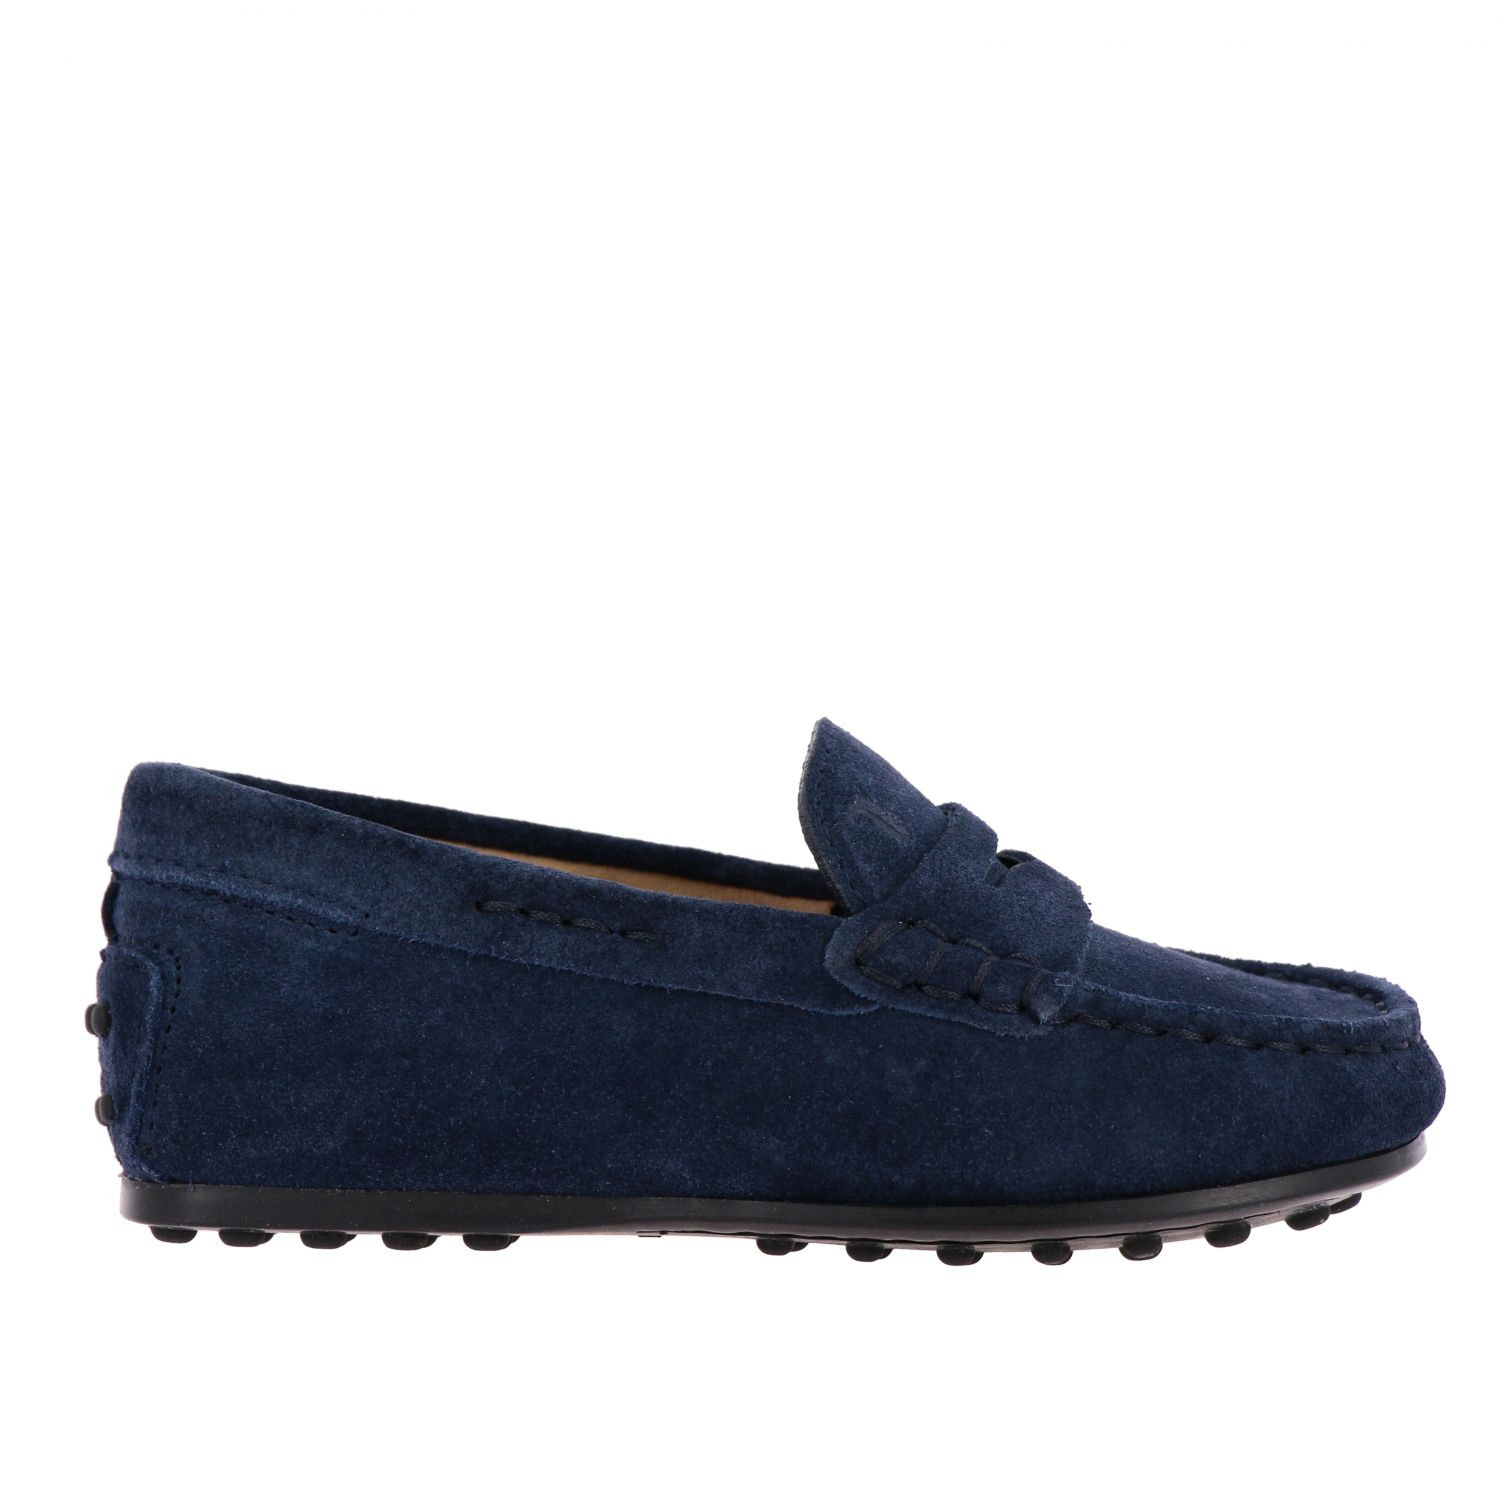 Shoes kids Tod's navy 1